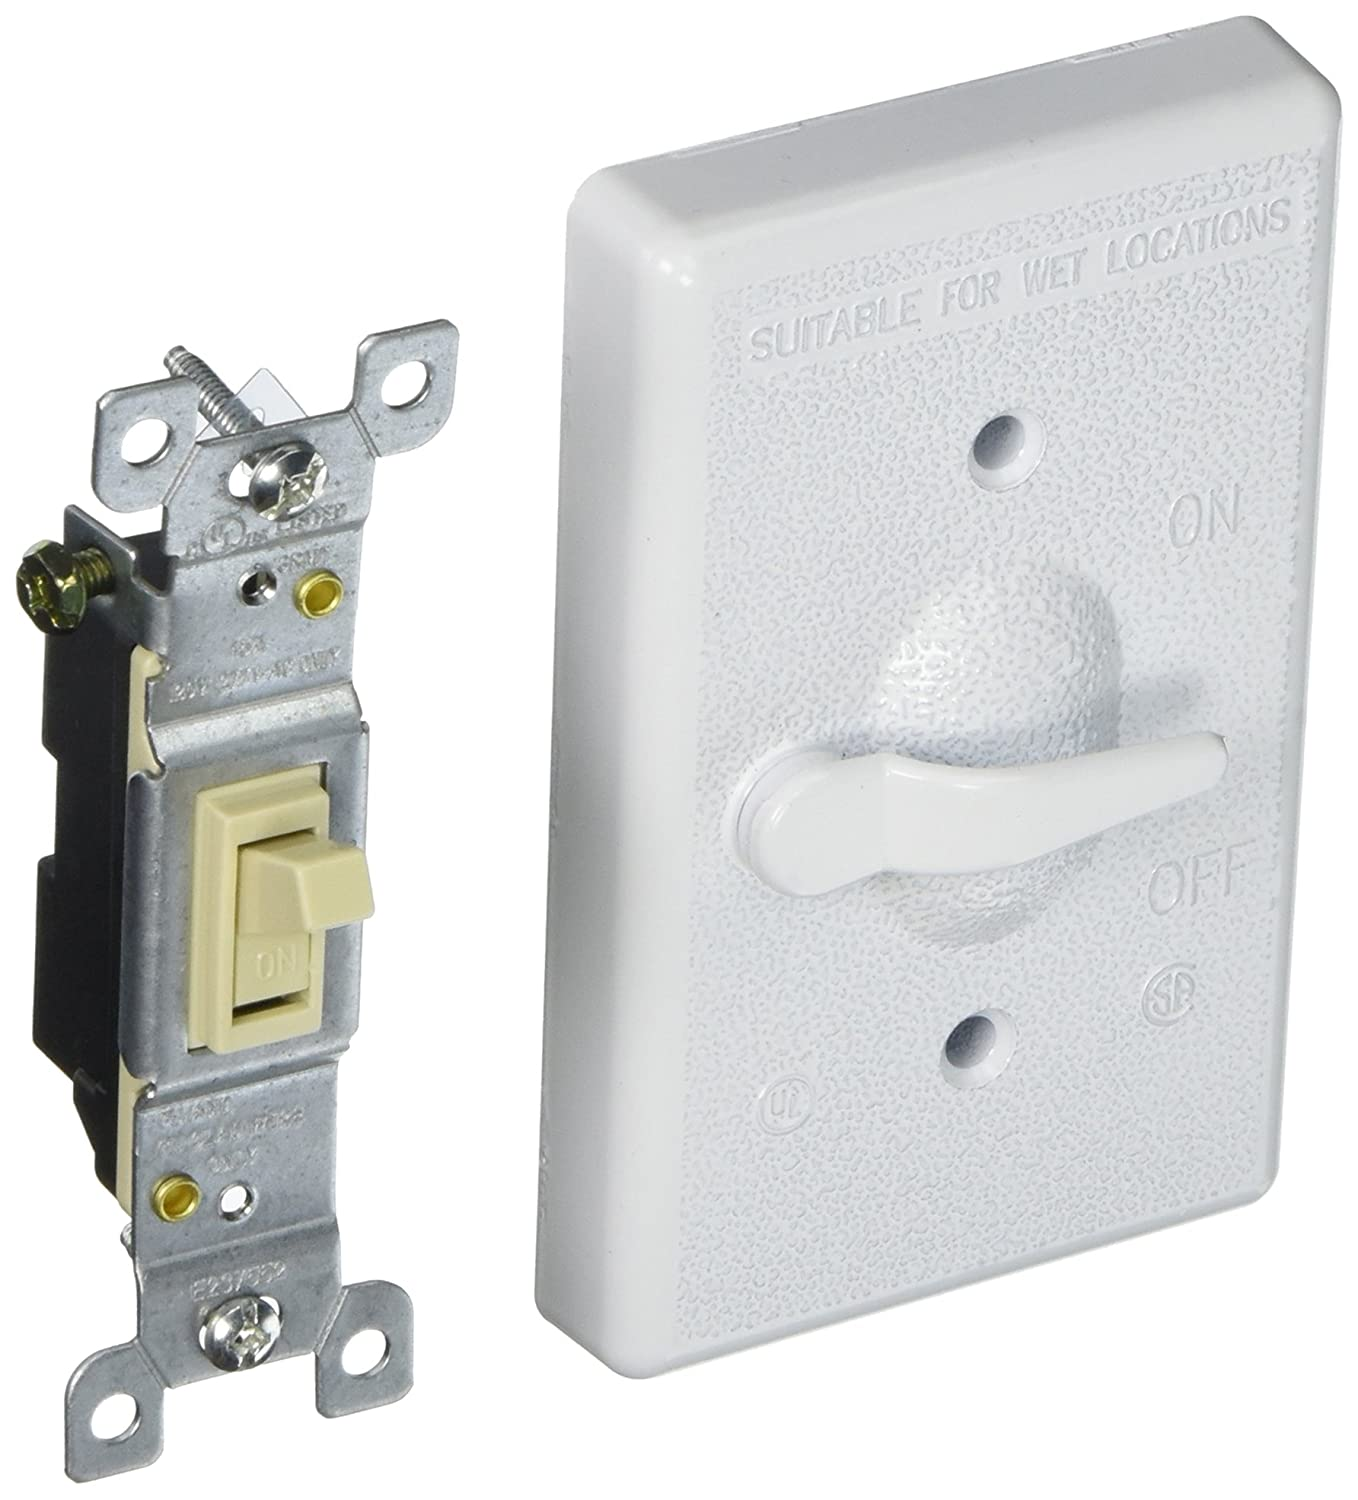 Hubbell-Bell 5121-1 1-Gang Vertical Lever Switch Weatherproof Cover ...